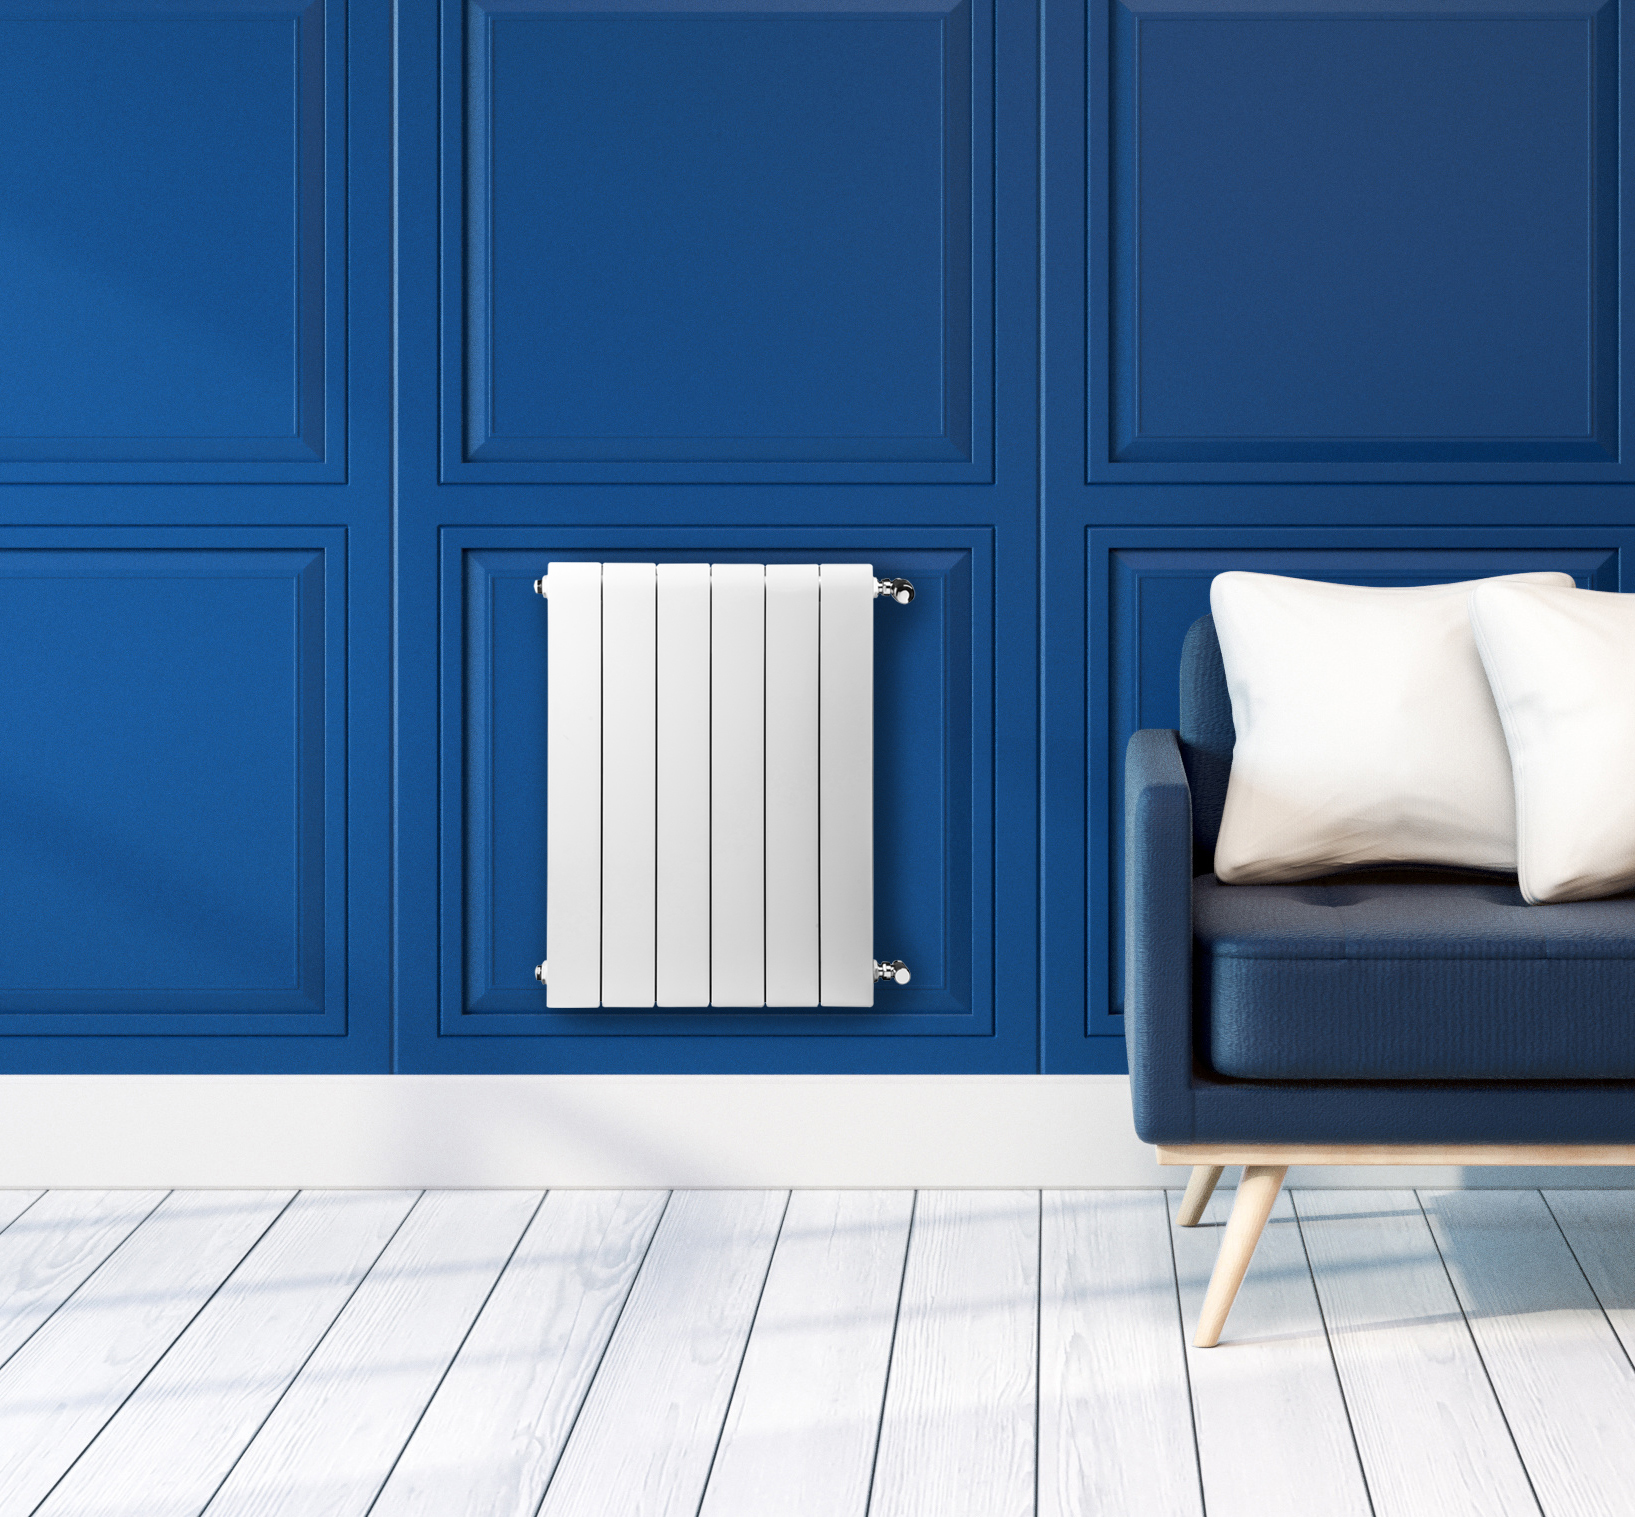 Introducing the Afinia Aluminium Radiators from Grant UK